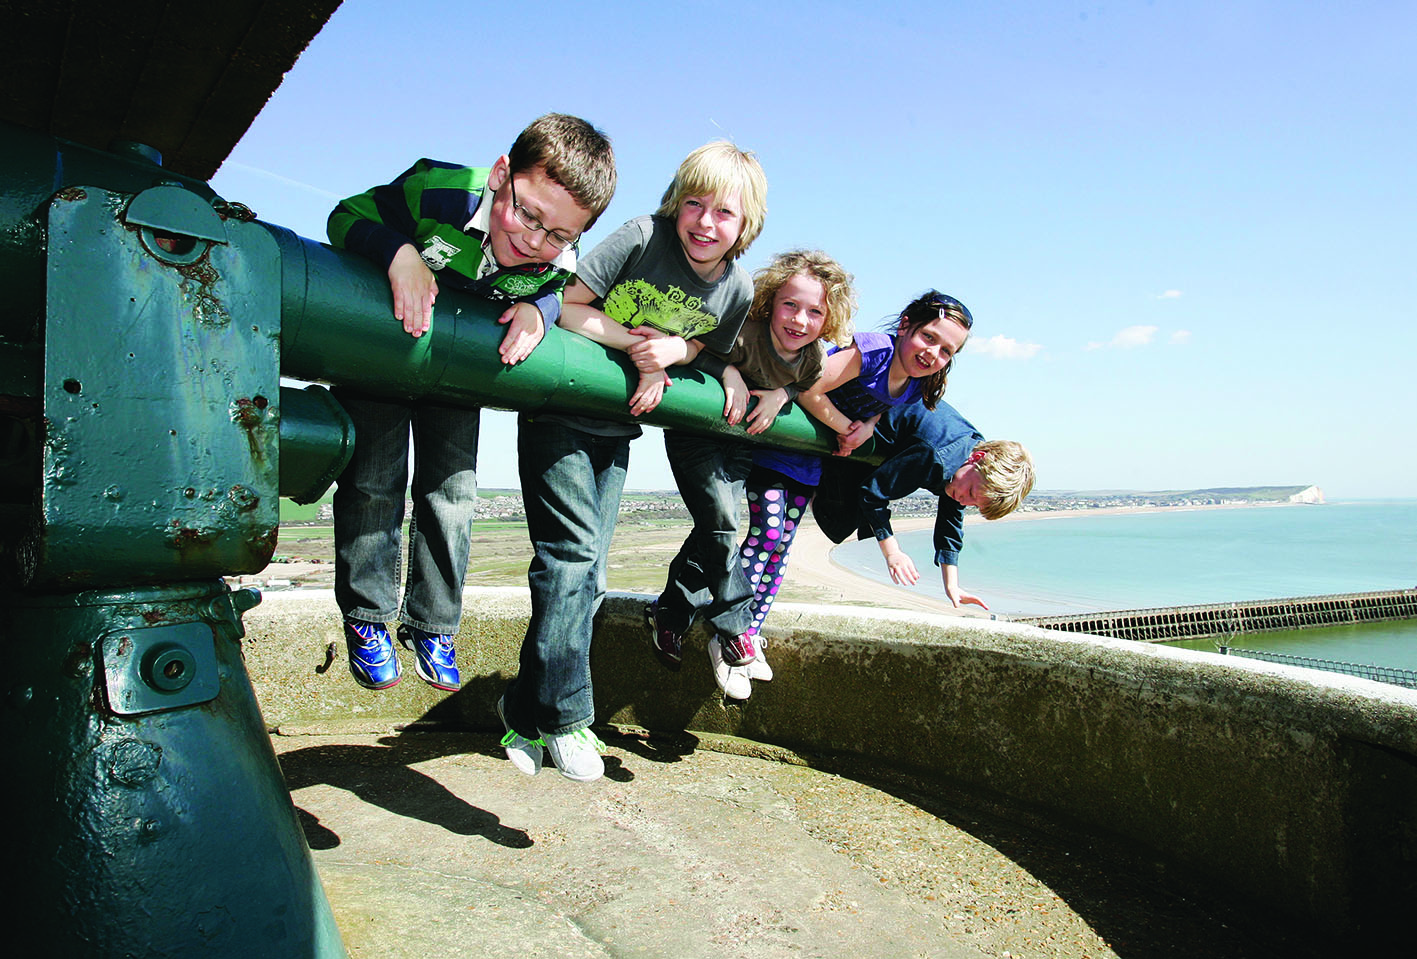 10 Things to Explore at Newhaven Fort Before You're 10 Years Old